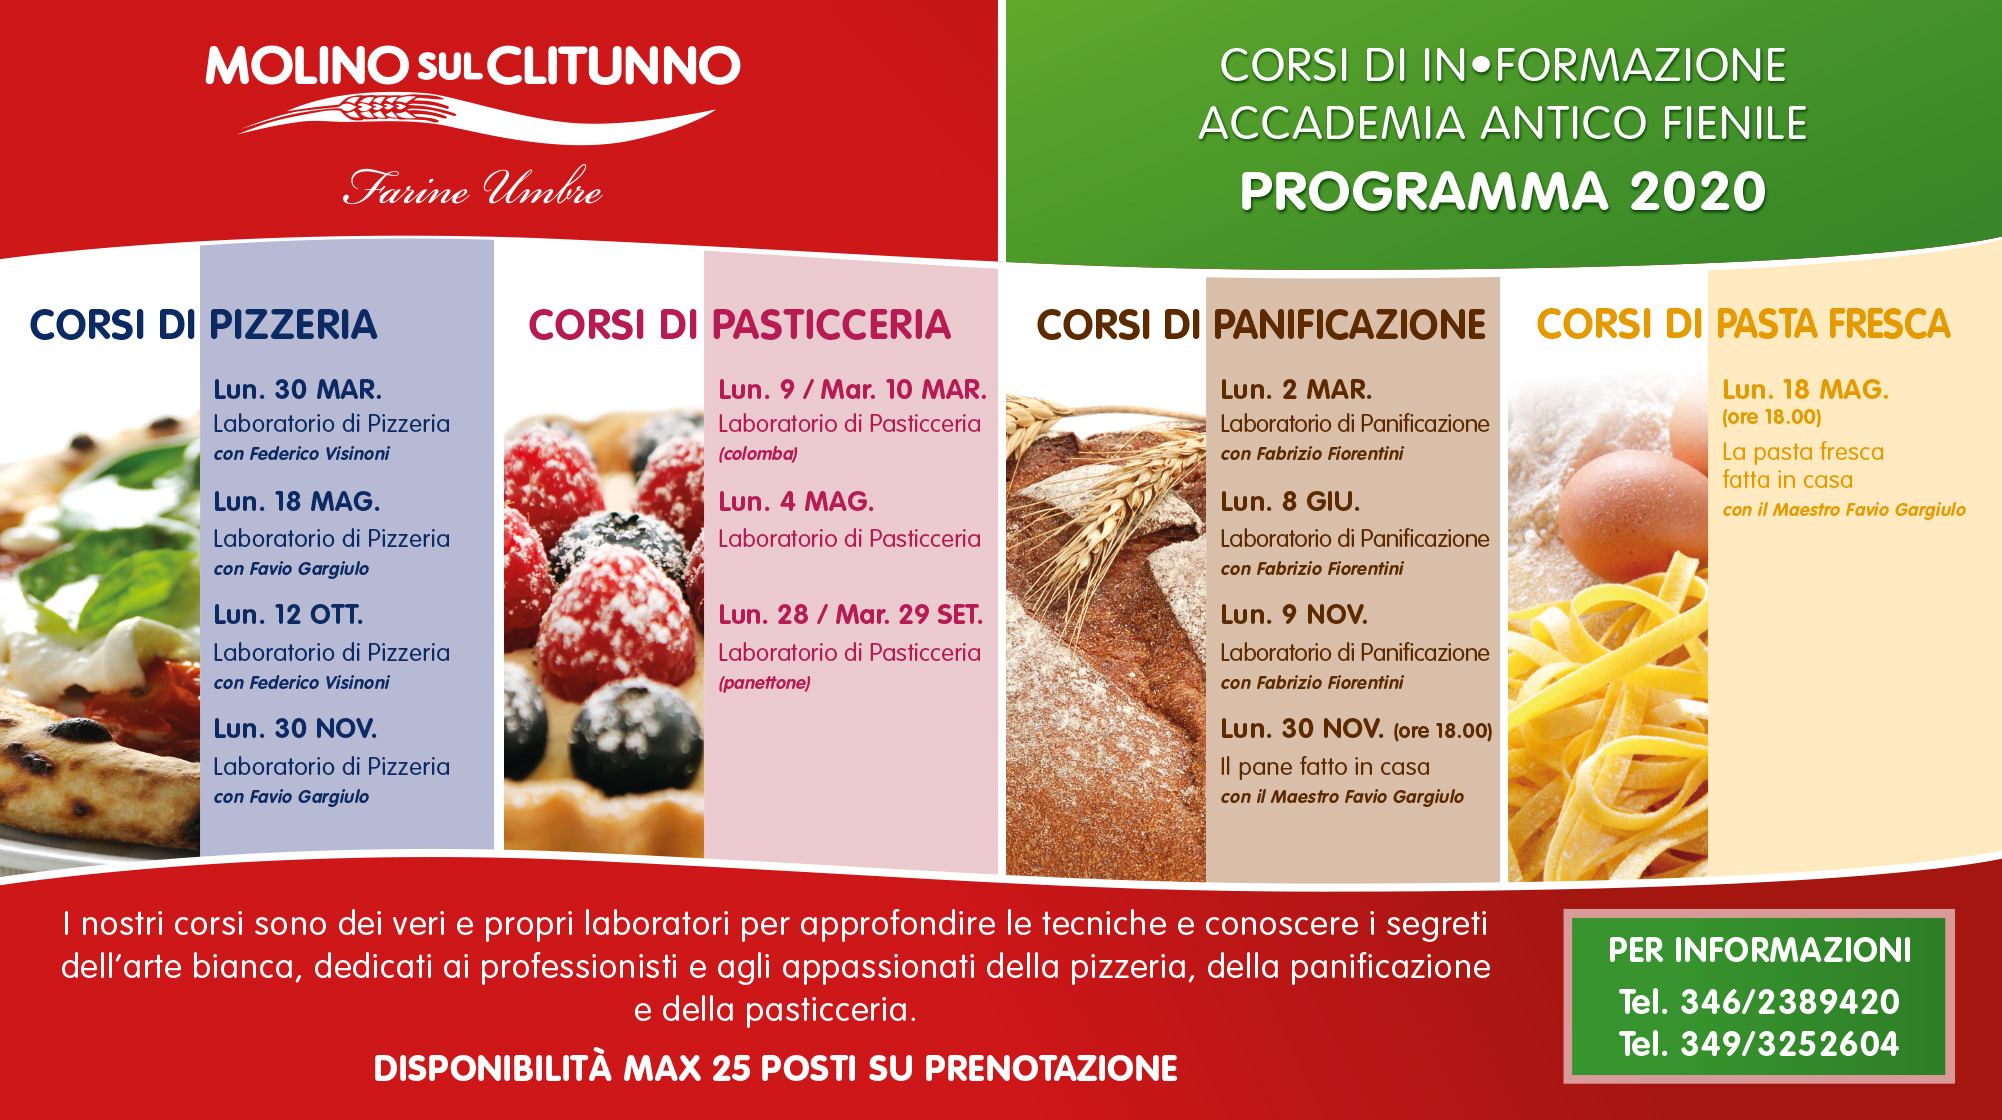 The IN-Formation 2020 courses of the Accademia Antico Fienile start again